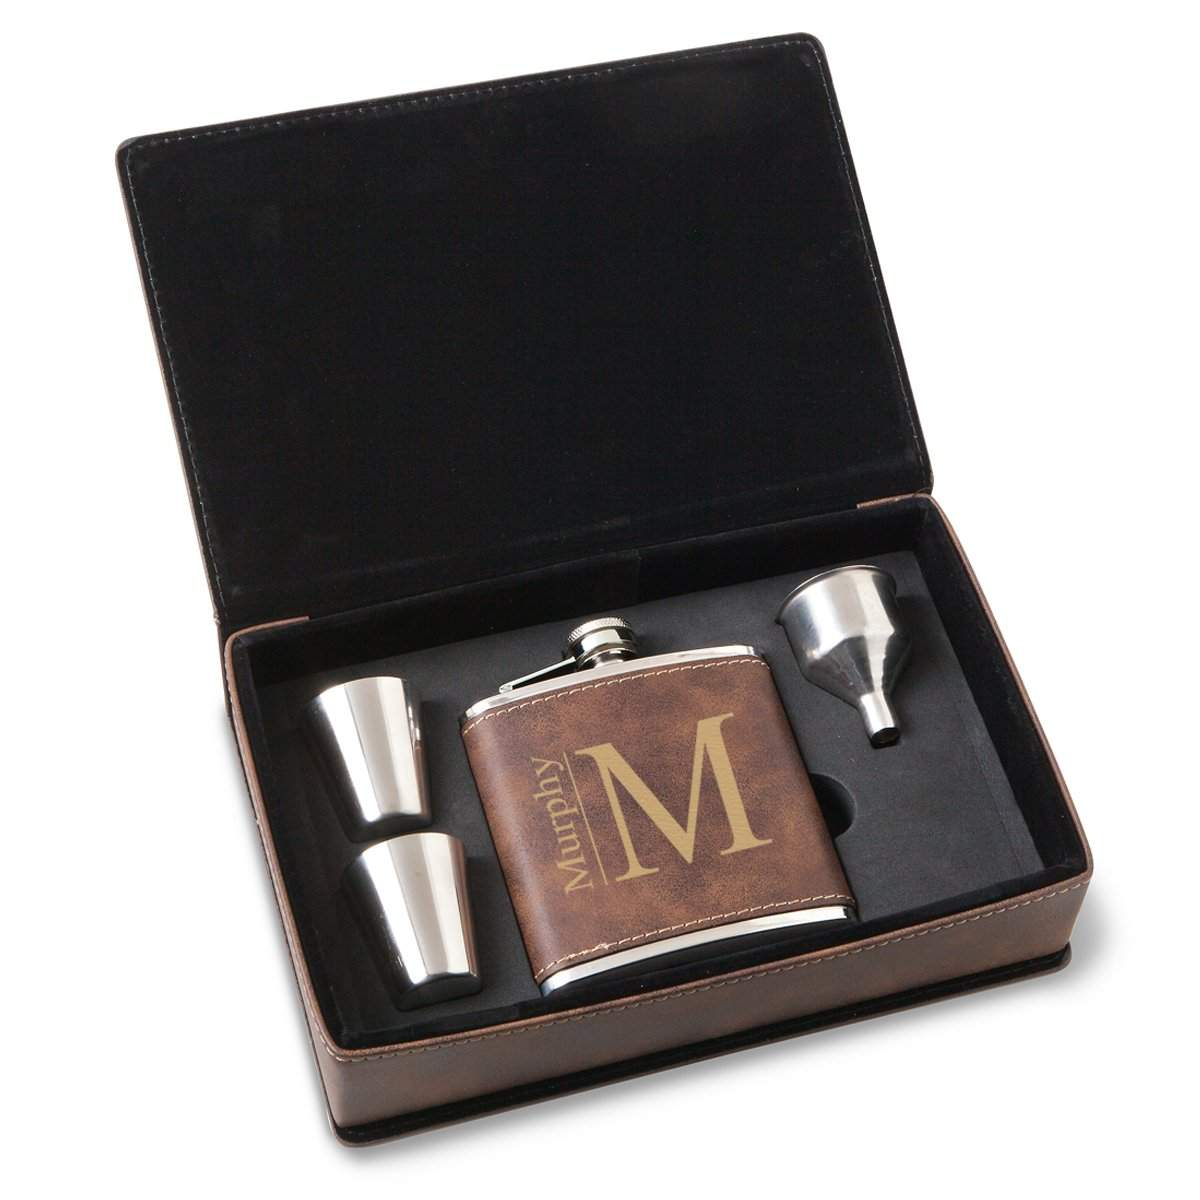 Personalized-Rustic-Faux-Leather-Stainless-Steel-Flask-Gift-Set